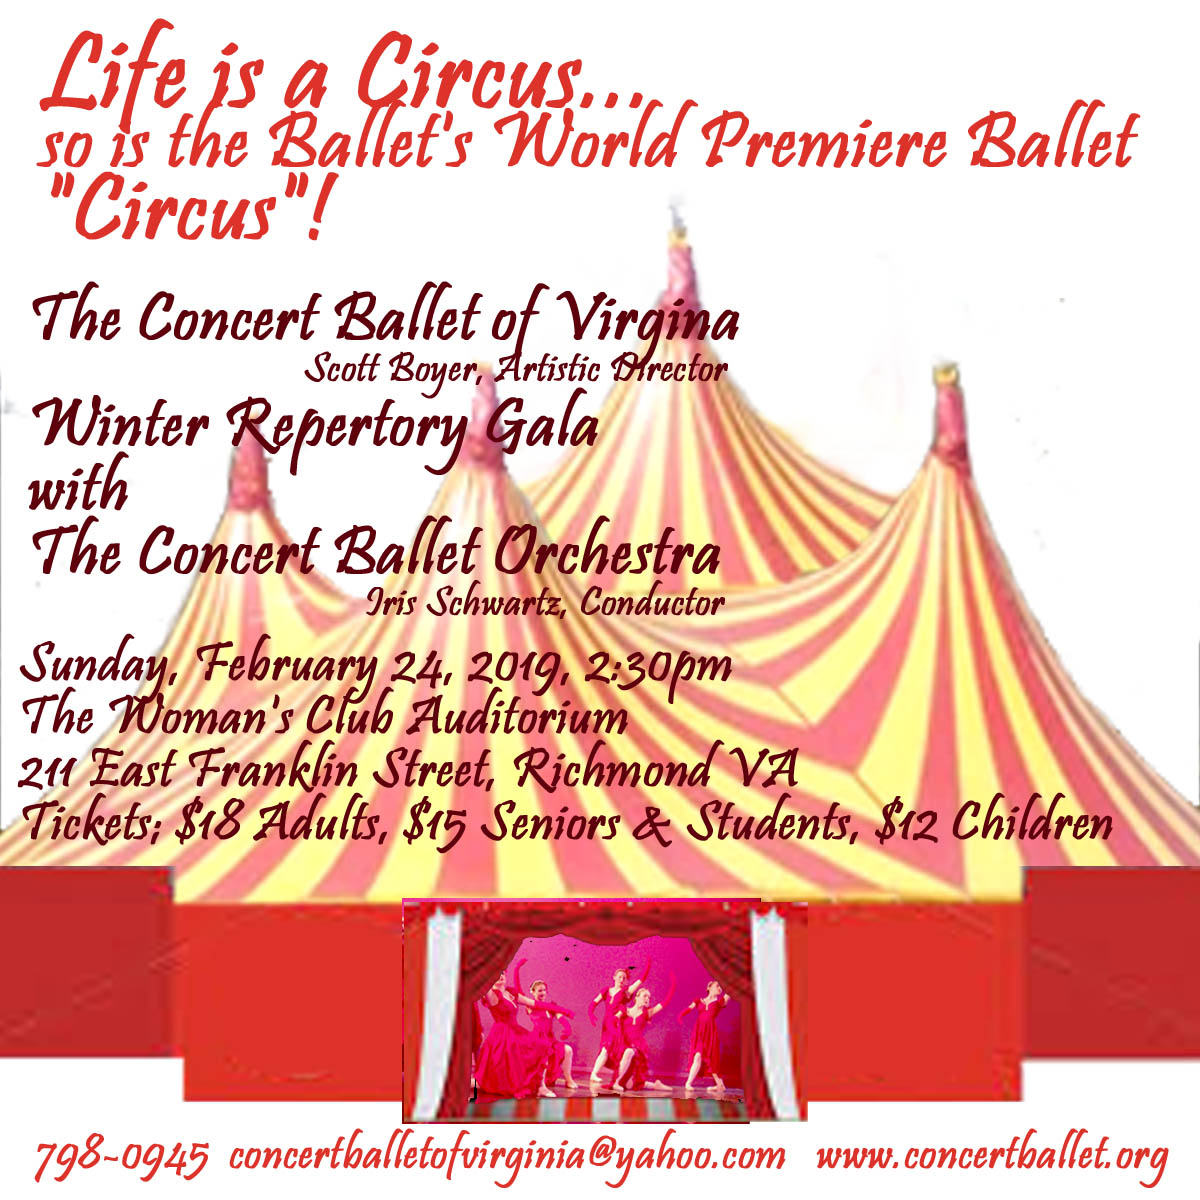 CONCERT BALLET OF VIRGINIA: It's a Circus Out There